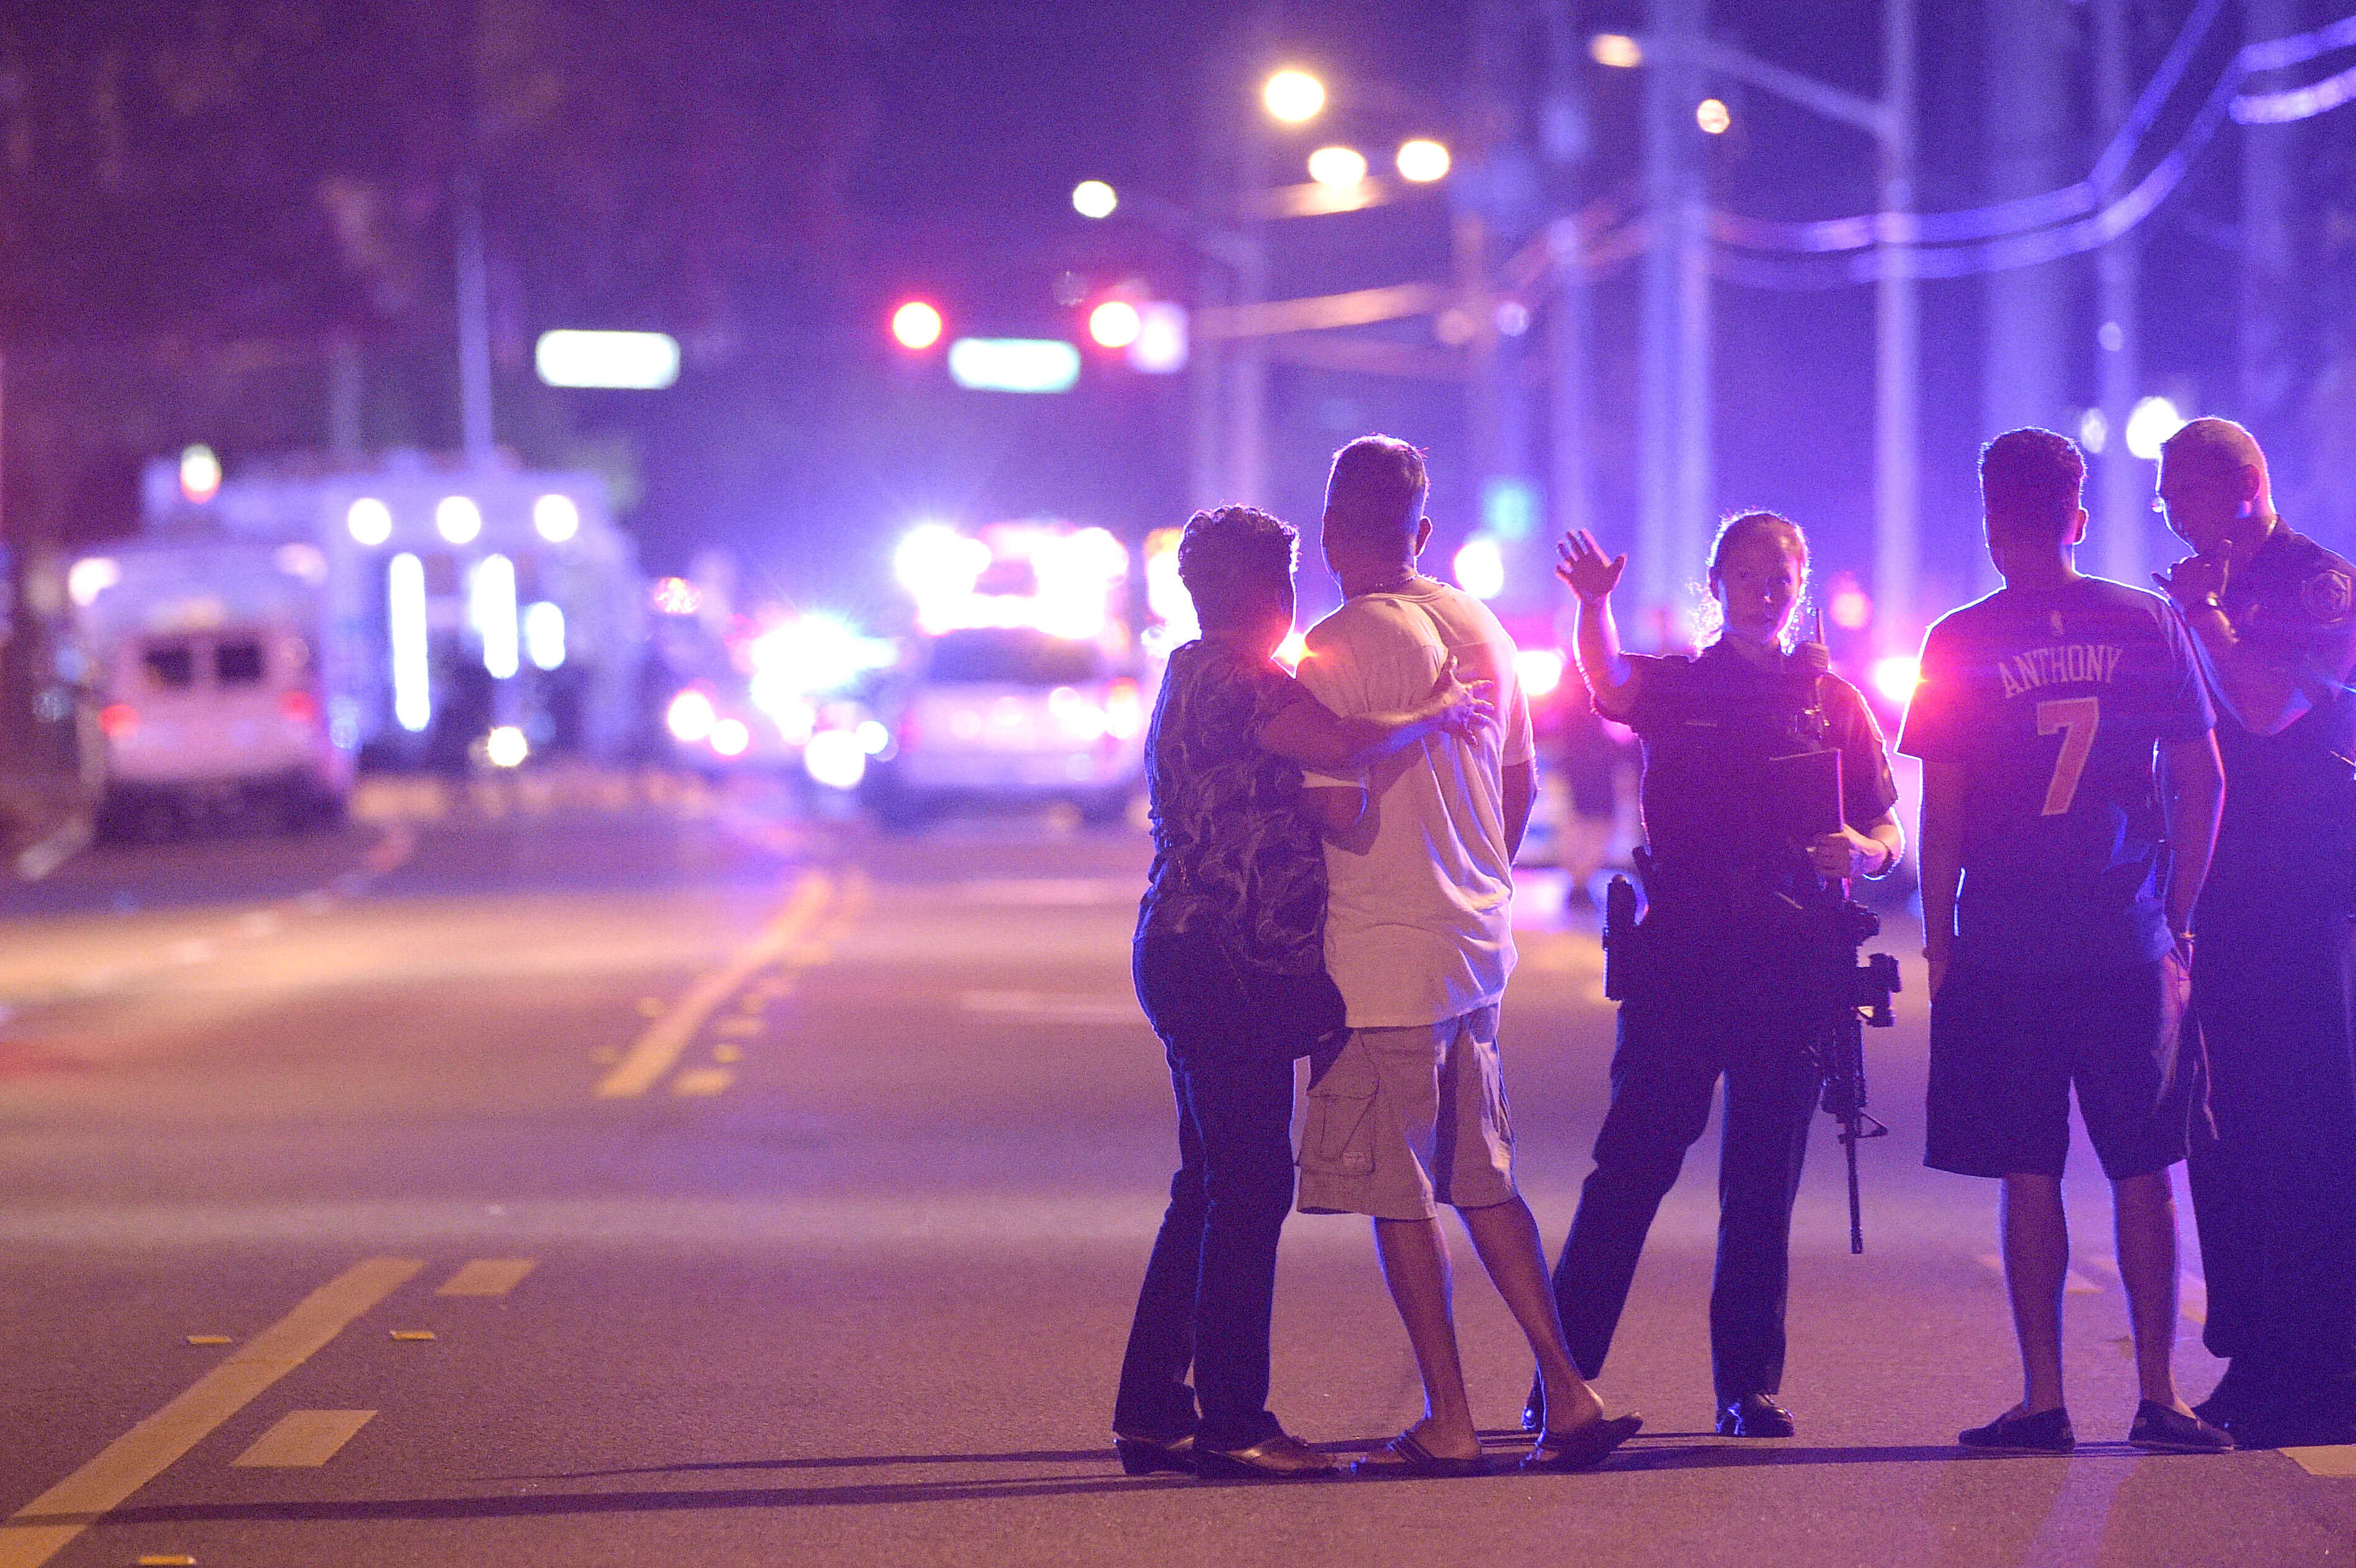 Wife Of Orlando Gunman Has Disappeared pulse2 2 1 1